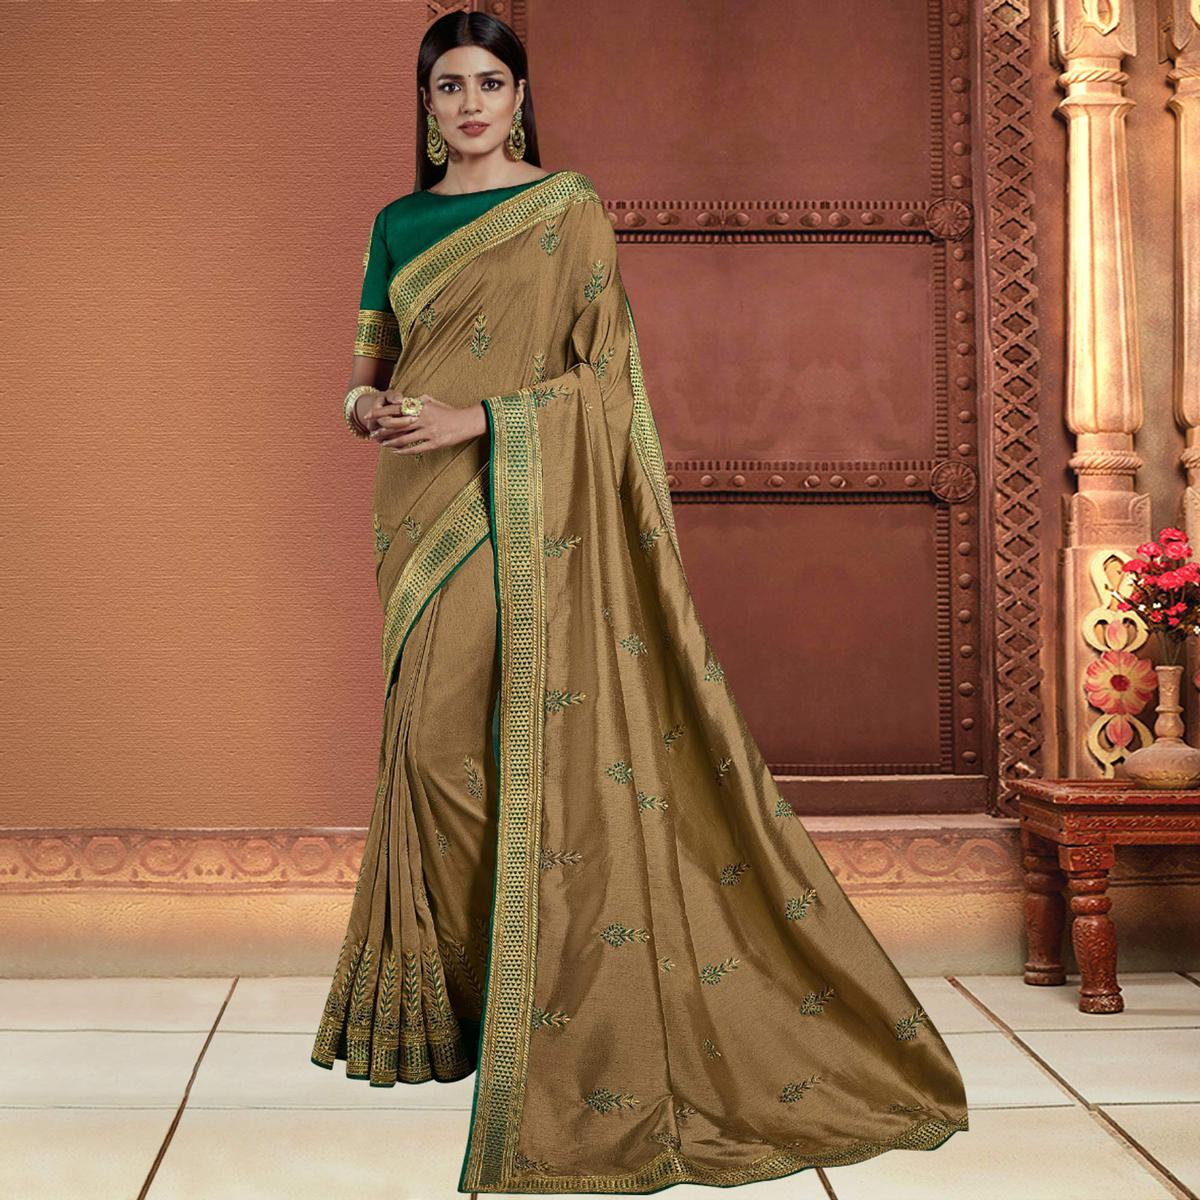 Marvellous Chiku Colored Partywear Embroidered Silk Saree